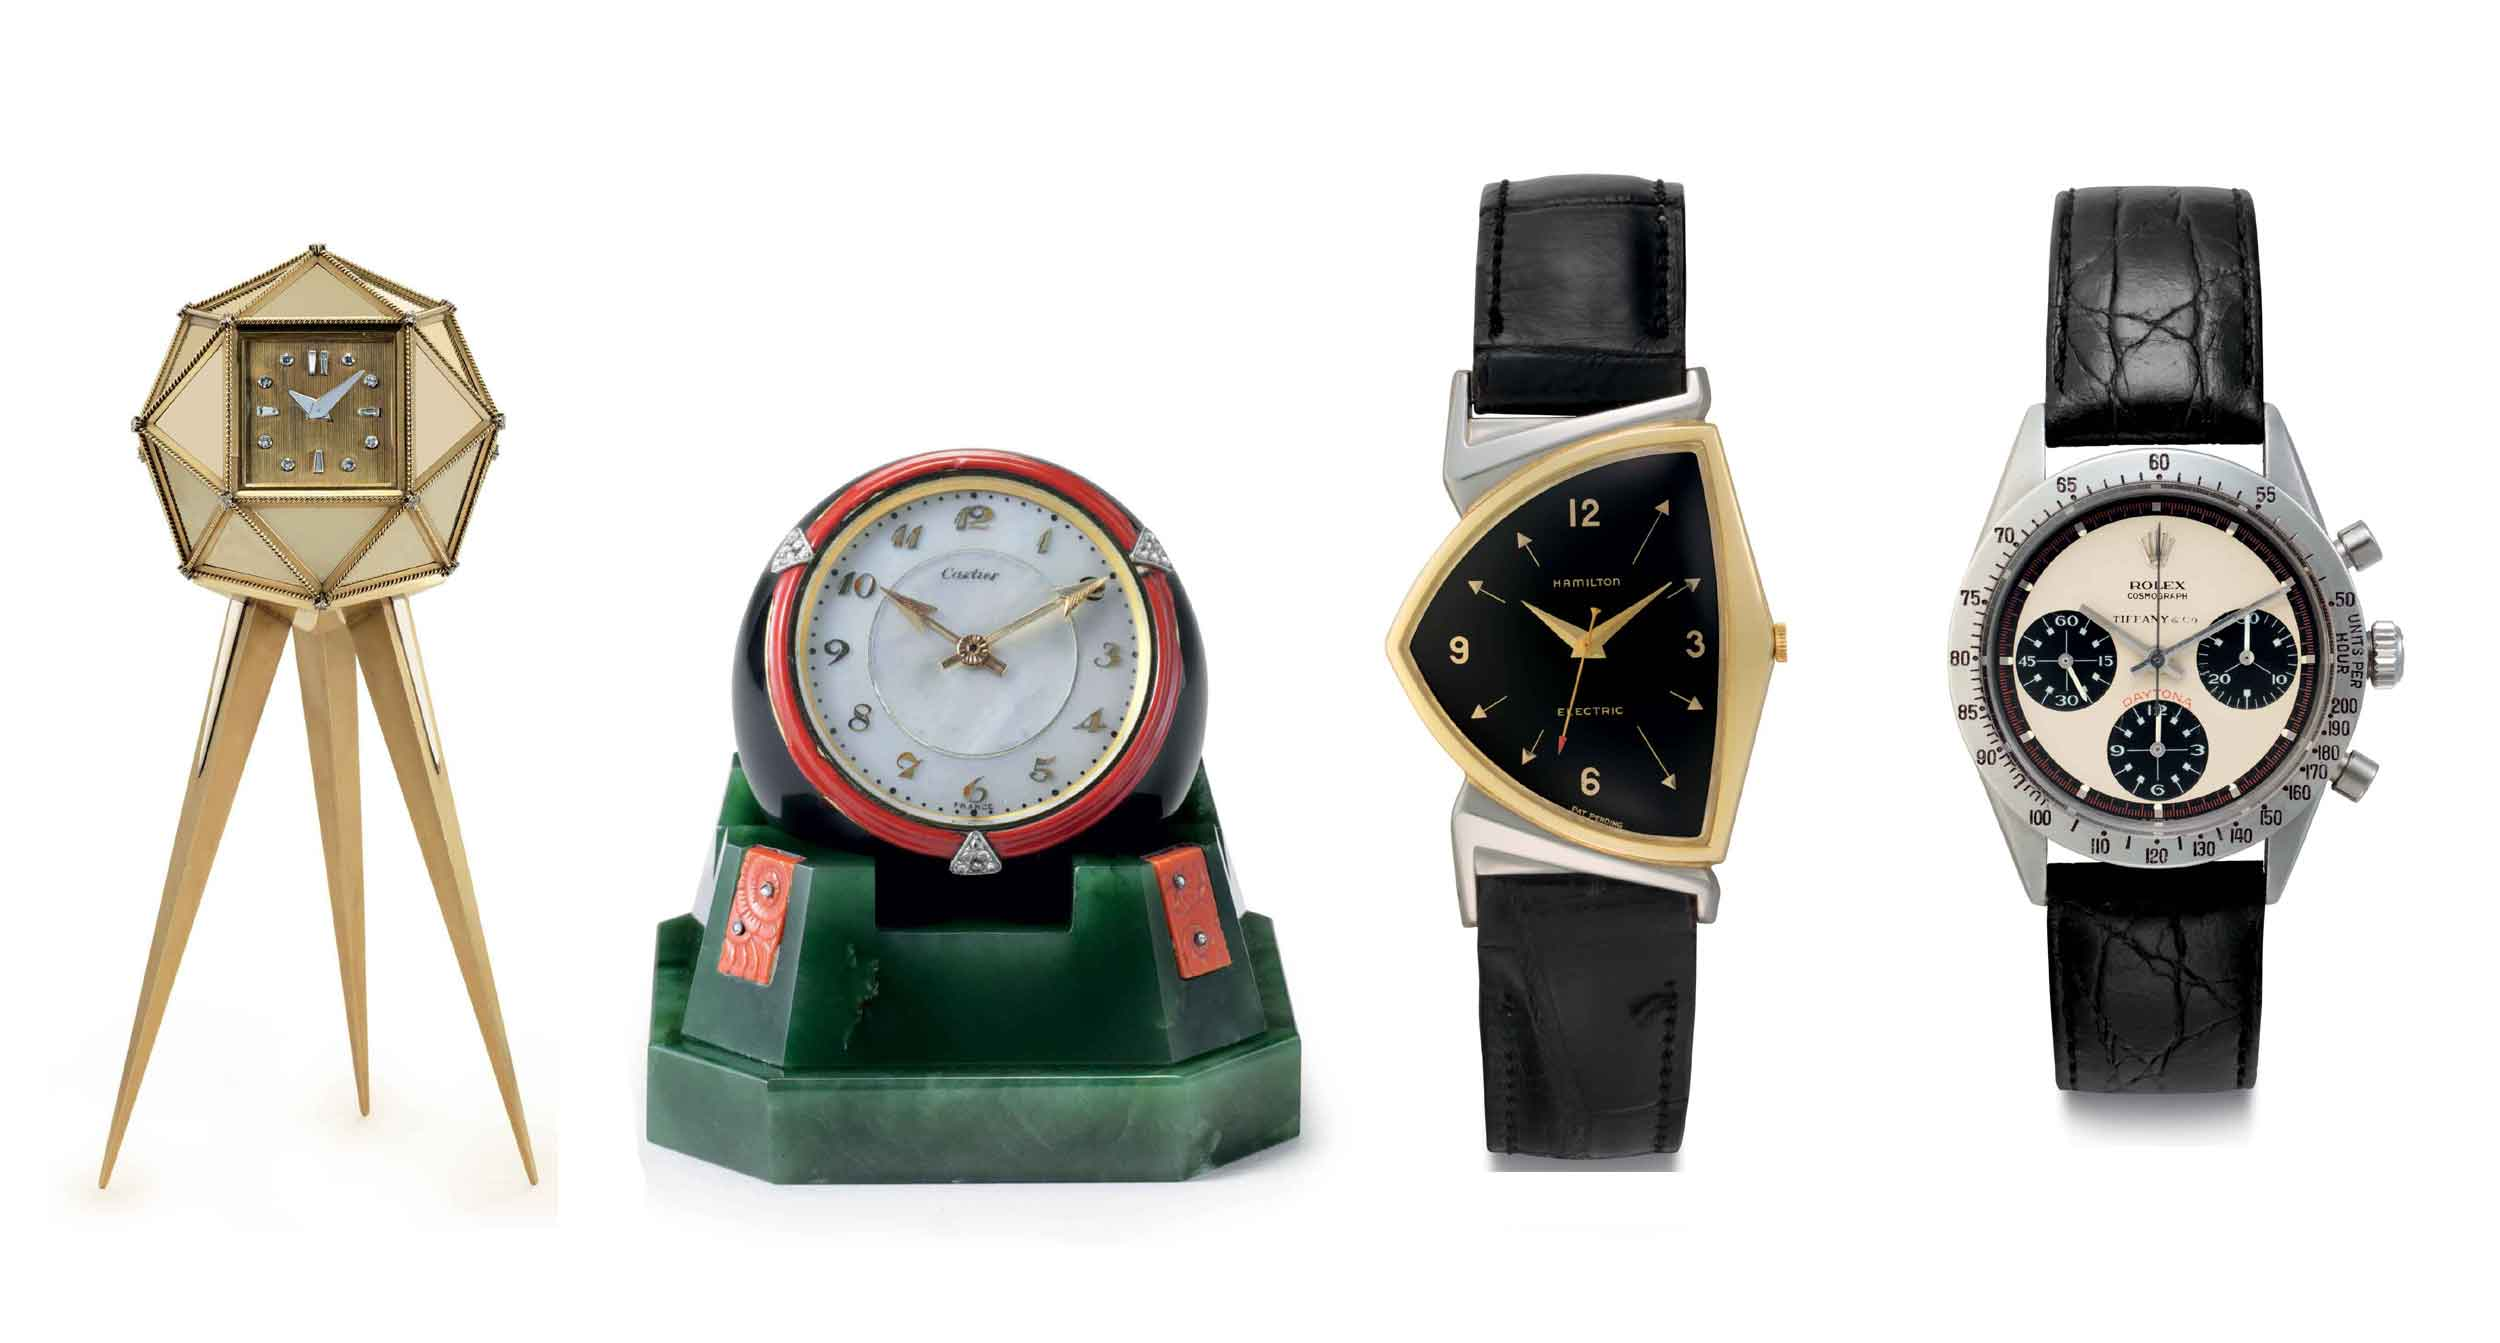 <b>Highlights from Christie's <em>Rare Watches and American Icons</em> sale, from left to right:</b><br/><a href=&quot;http://www.christies.com/lotfinder/watches/cartier-a-very-fine-18k-gold-silver-6085937-details.aspx?from=salesummery&amp;intObjectID=6085937&amp;sid=c59a3e84-d347-4773-aeb5-b466d6fc1c9c&quot; target=&quot;_blank&quot;>Lot 128</a>: An 18k gold, silver, and diamond-set polyhedral Cartier desk clock ($80,000–120,000)<br/><a href=&quot;http://www.christies.com/lotfinder/watches/cartier-an-extremely-fine-and-rare-nephrite-6085931-details.aspx?from=salesummery&amp;intObjectID=6085931&amp;sid=c59a3e84-d347-4773-aeb5-b466d6fc1c9c&quot; target=&quot;_blank&quot;>Lot 122</a>: A nephrite, onyx, coral, mother-of-pearl and diamond-set Cartier desk clock ($70,000–110,000)<br/> <a href=&quot;http://www.christies.com/lotfinder/watches/hamilton-a-fine-and-historically-important-two-tone-6086057-details.aspx?from=salesummery&amp;intObjectID=6086057&amp;sid=1e916dd9-b9d0-4793-8ac3-fa45ac989486&quot; target=&quot;_blank&quot;>Lot 249</a>: A two-tone gold filled asymmetrical Hamilton wristwatch with center seconds and black dial, belonging to the 36th President of the United States, Lyndon B. Johnson ($15,000–30,000)<br/> <a href=&quot;http://www.christies.com/lotfinder/watches/rolex-a-very-fine-and-rare-stainless-6085857-details.aspx?from=salesummery&amp;intObjectID=6085857&amp;sid=8c020433-38ca-4c76-b0ba-0af2d4a75fc5&quot; target=&quot;_blank&quot;>Lot 48</a>: A stainless steel Rolex chronograph wristwatch with &quot;Paul Newman&quot; dial ($200,000–400,000)